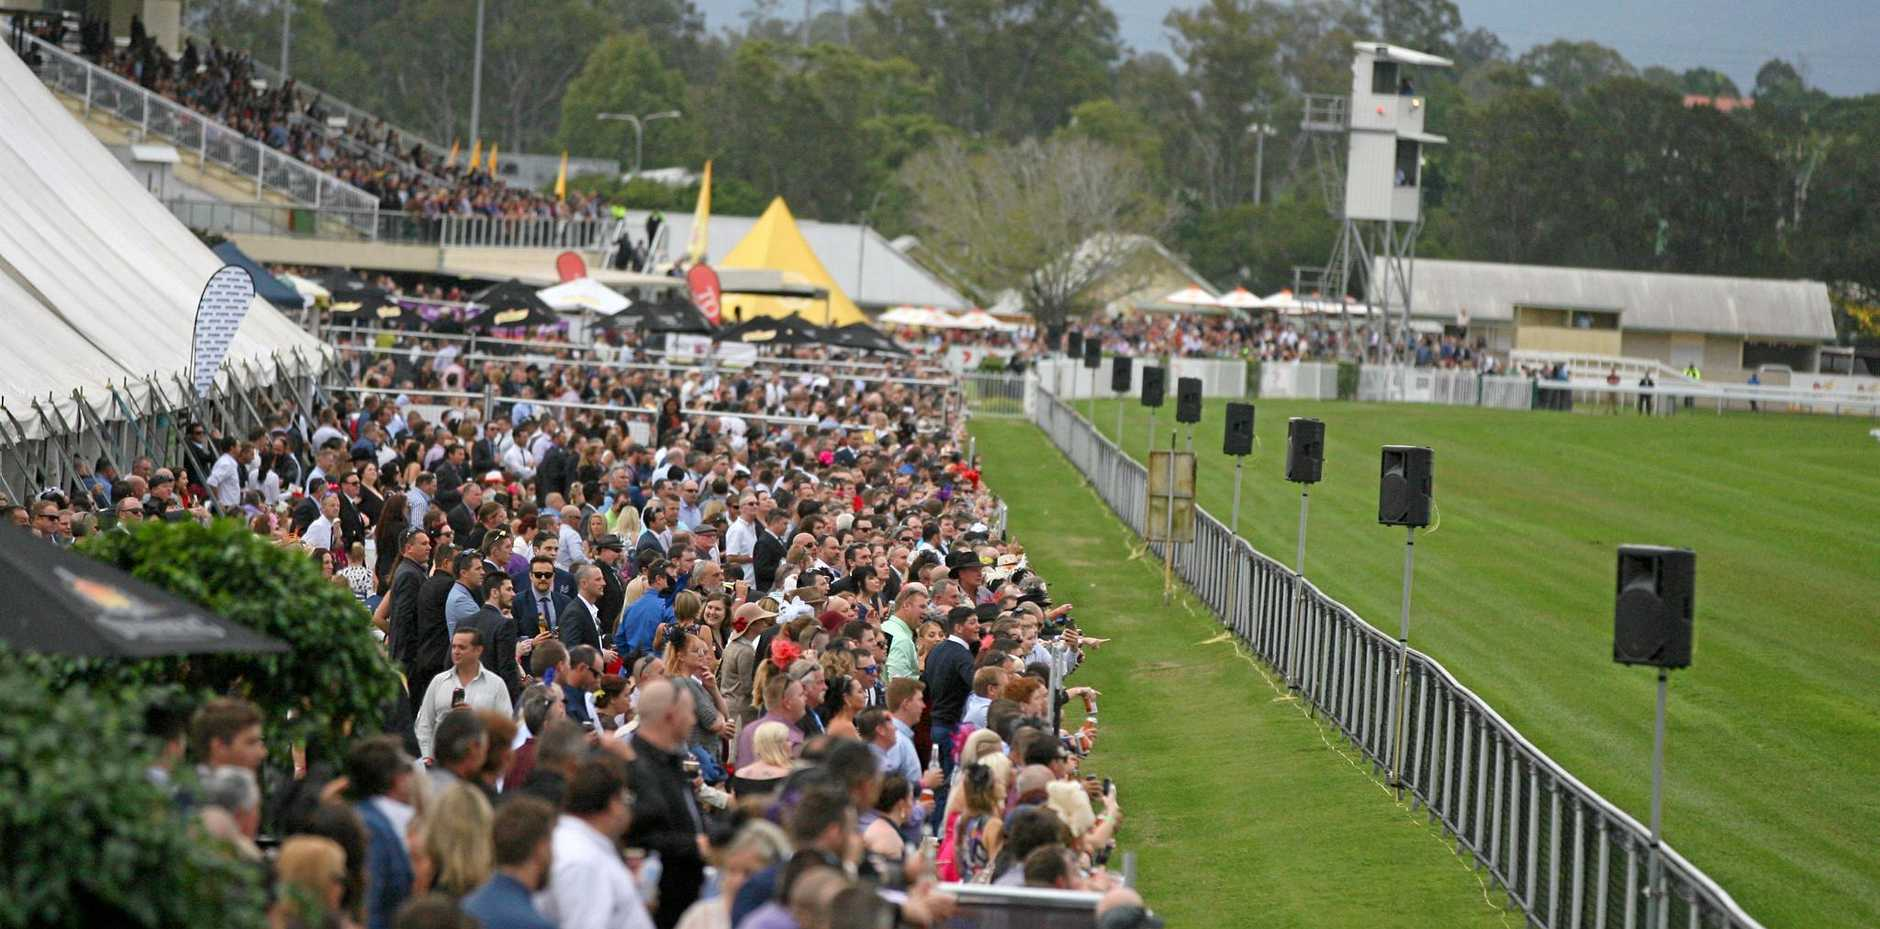 OUR DAY: A huge crowd gathers for the main race at last year's Ipswich Cup. Organisers are expecting another big crowd.